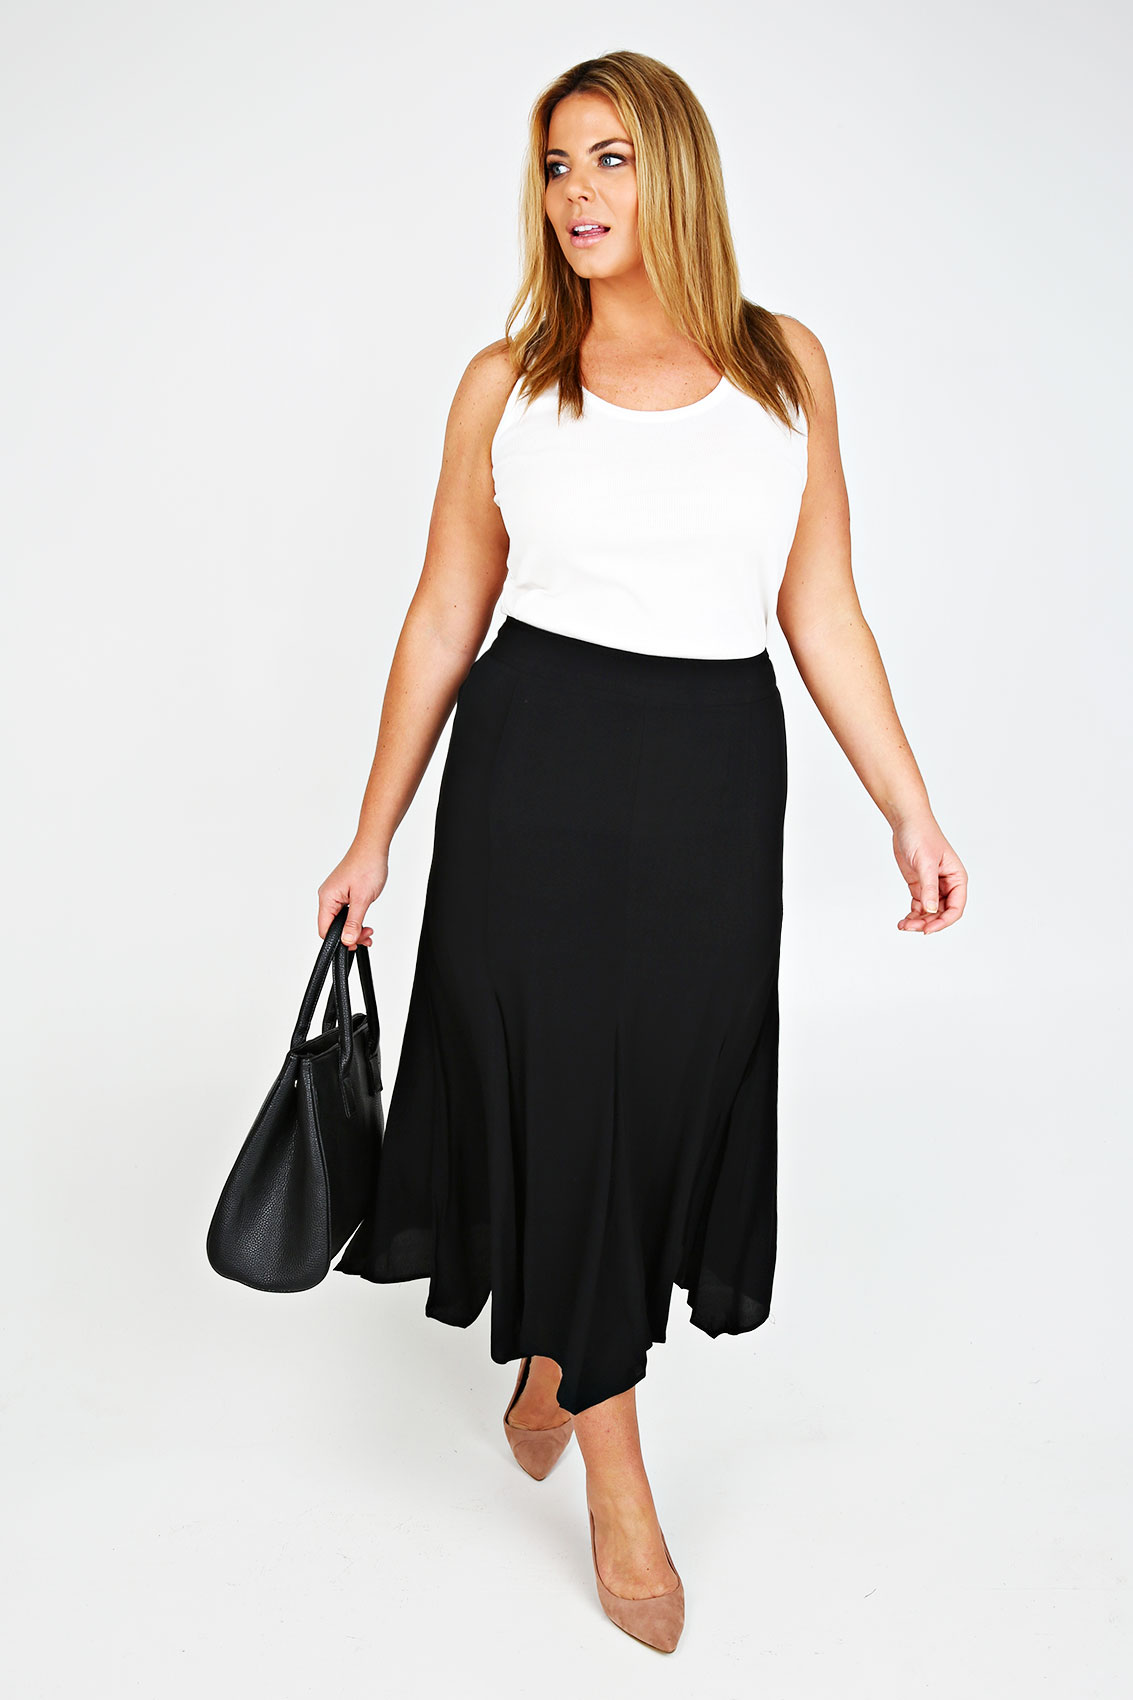 Crinkle Skirt: No iron needed with this carefree crinkle fabric. Skirt features a smooth flat front with an elastic back for comfort. Skirt features a smooth flat front with an elastic back for comfort.